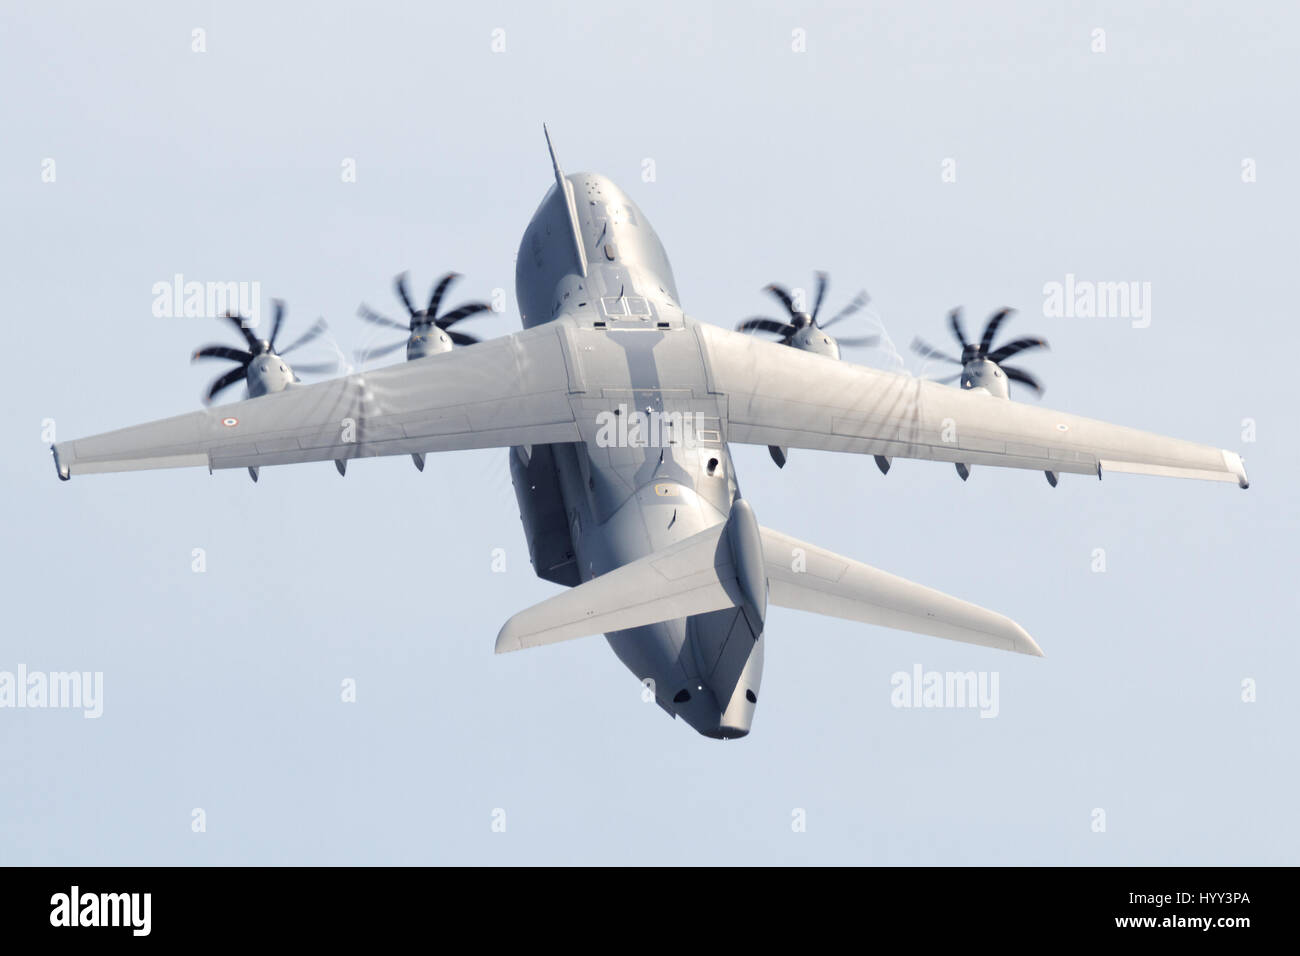 Airbus A400M performing at Melbourne Airshow 2017 - Stock Image